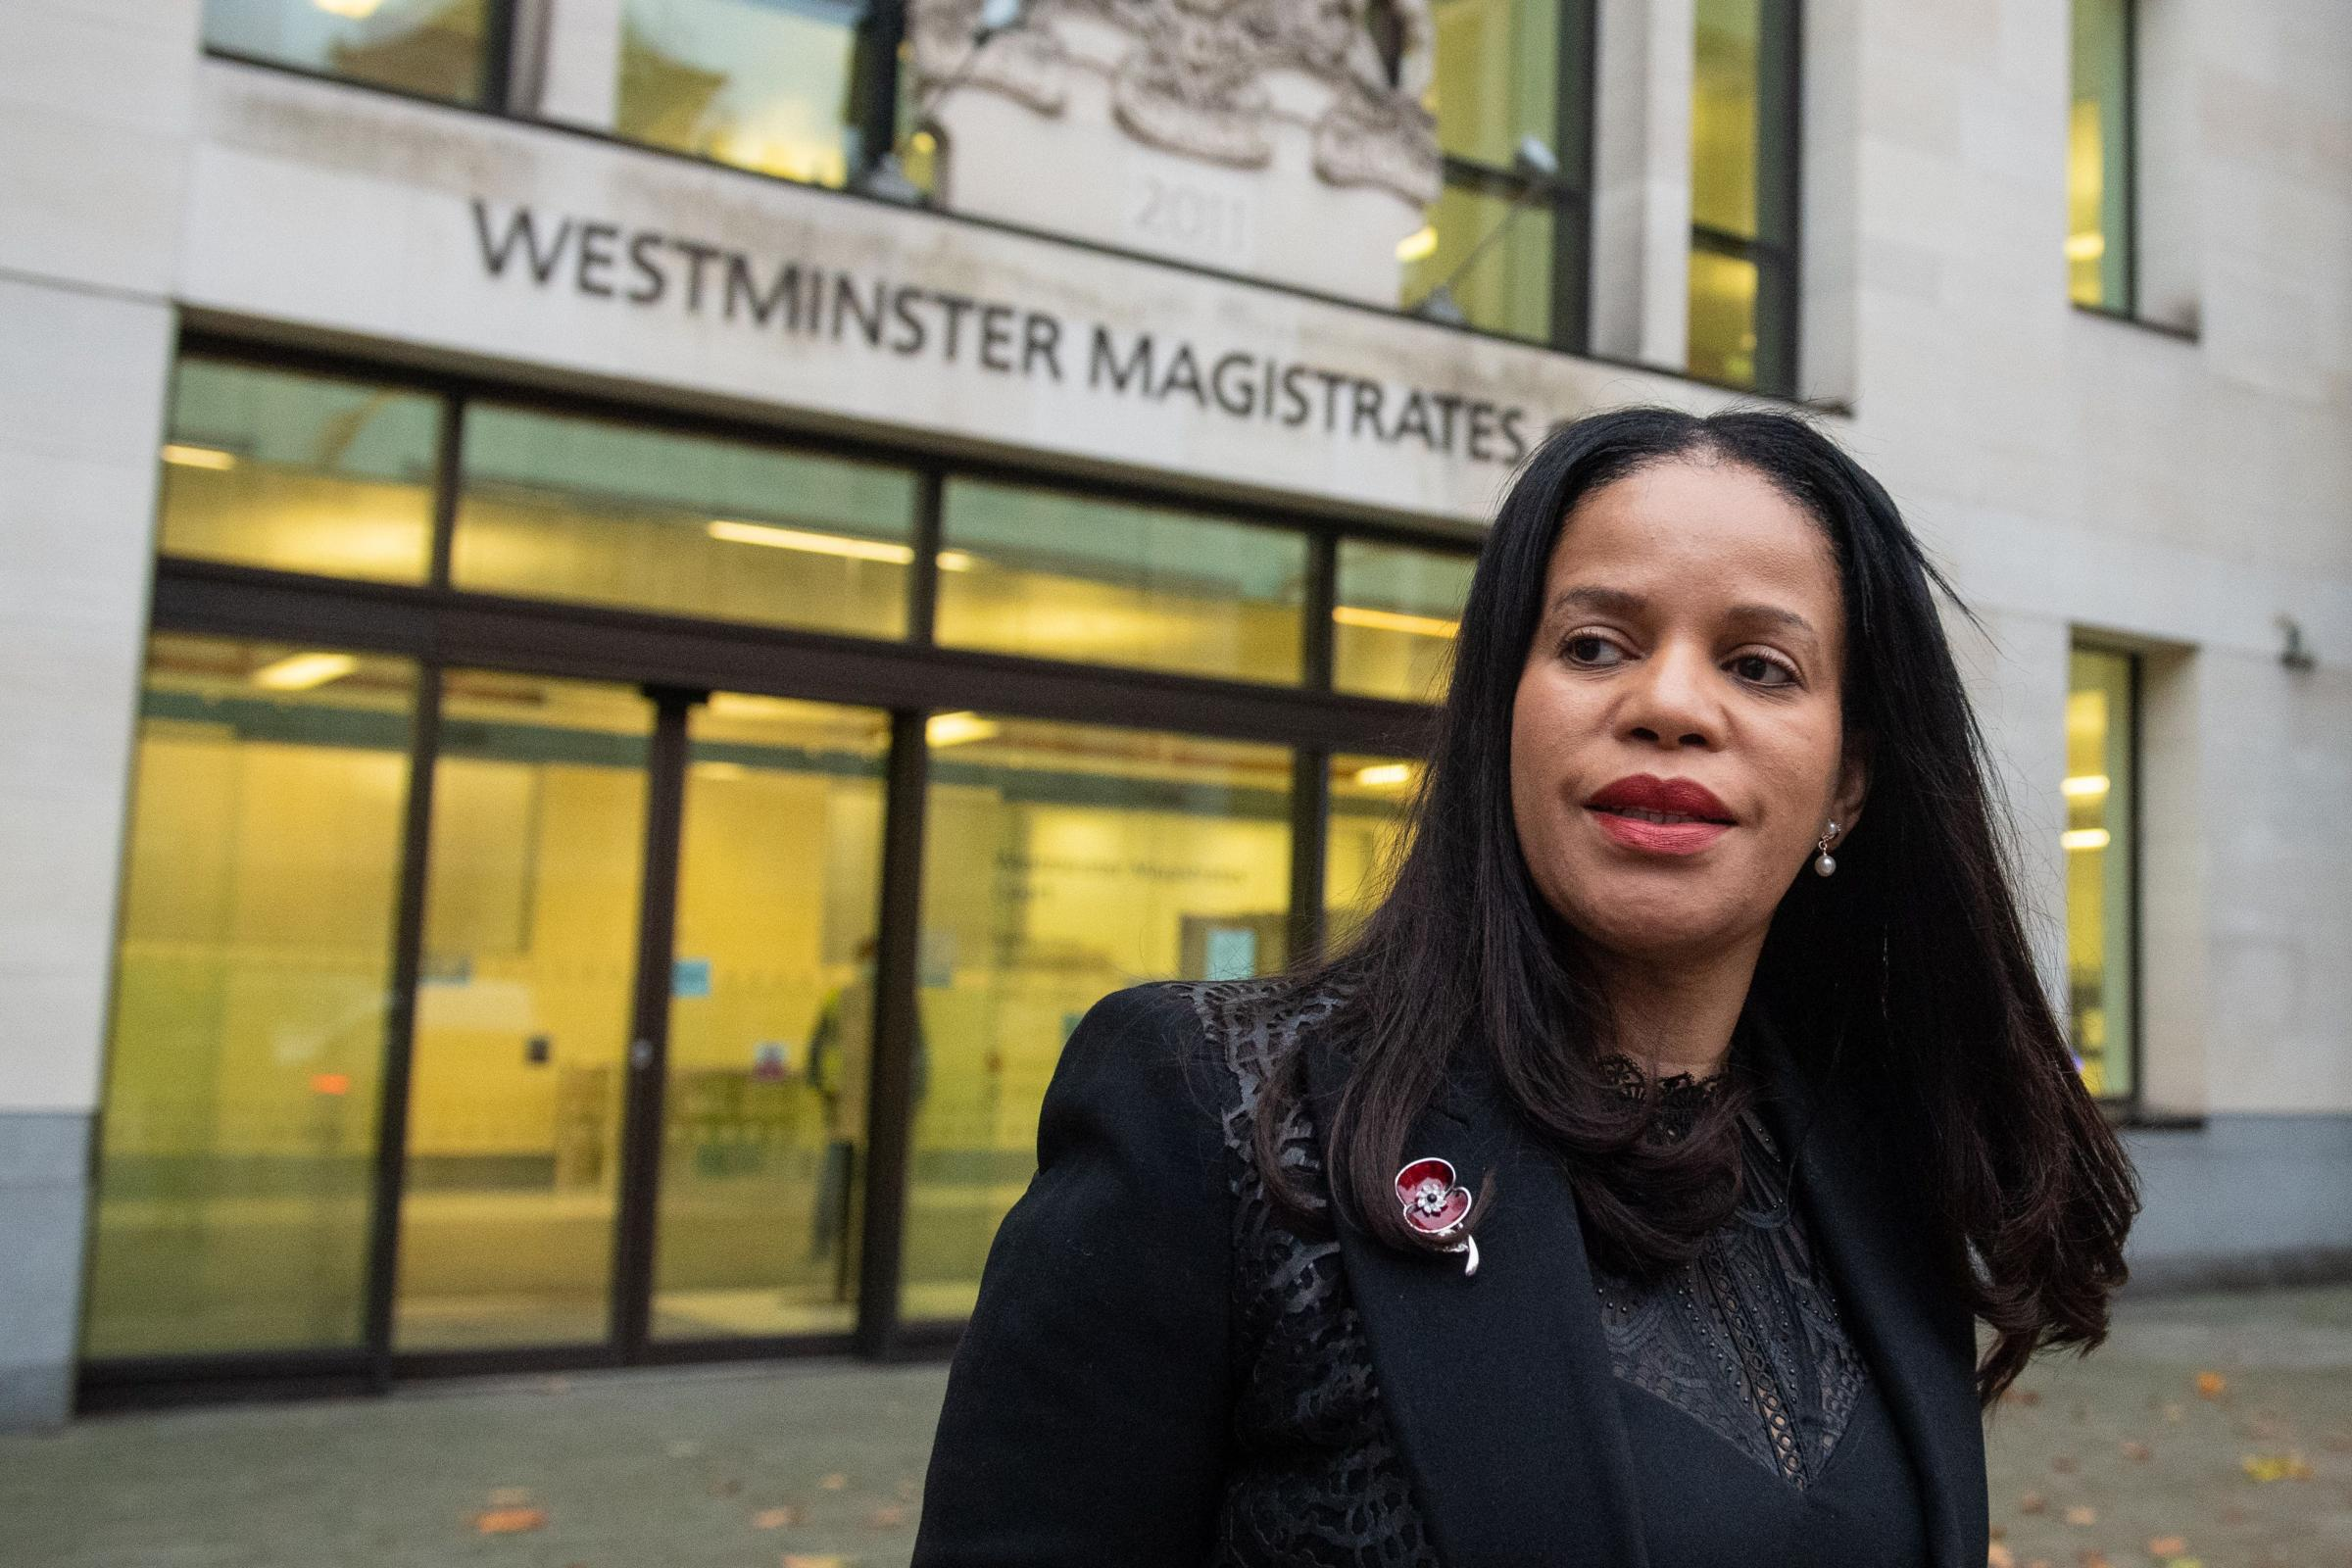 MP Claudia Webbe allegedly engaged in campaign of harassment against woman    Warrington Guardian